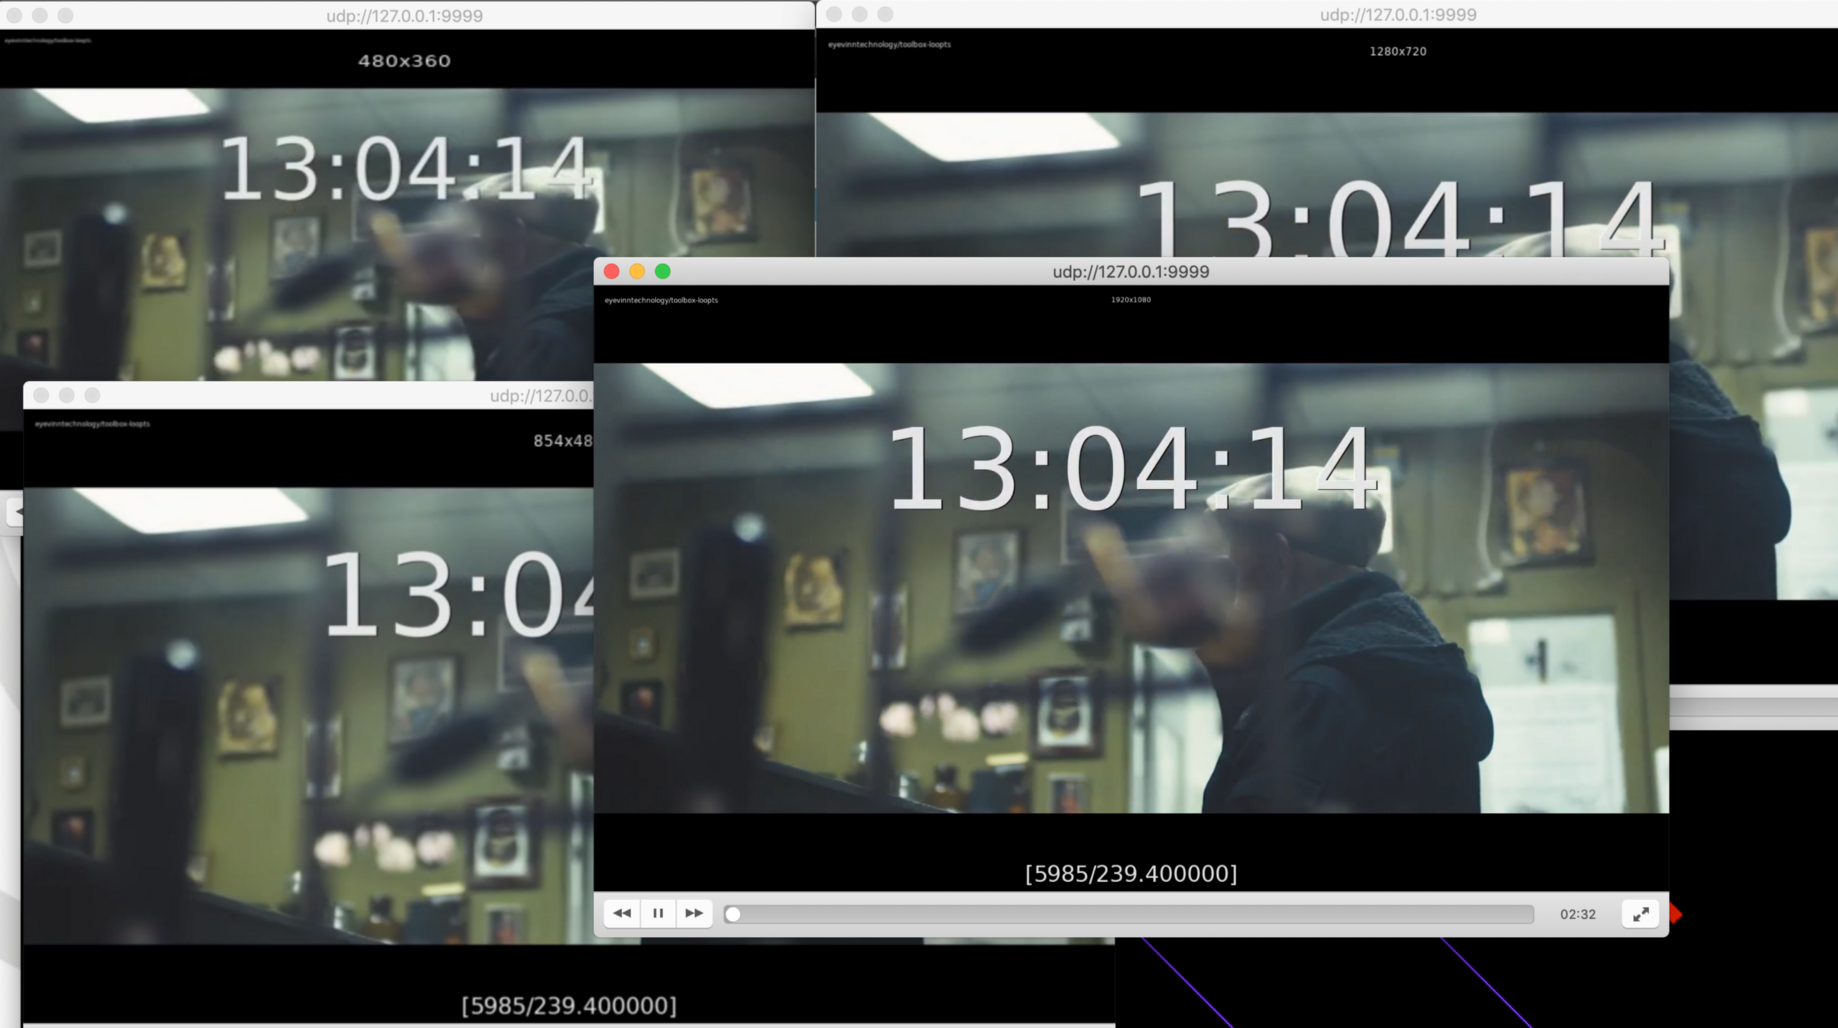 Loop file and generate multiple video bitrates muxed in MPEG-TS with